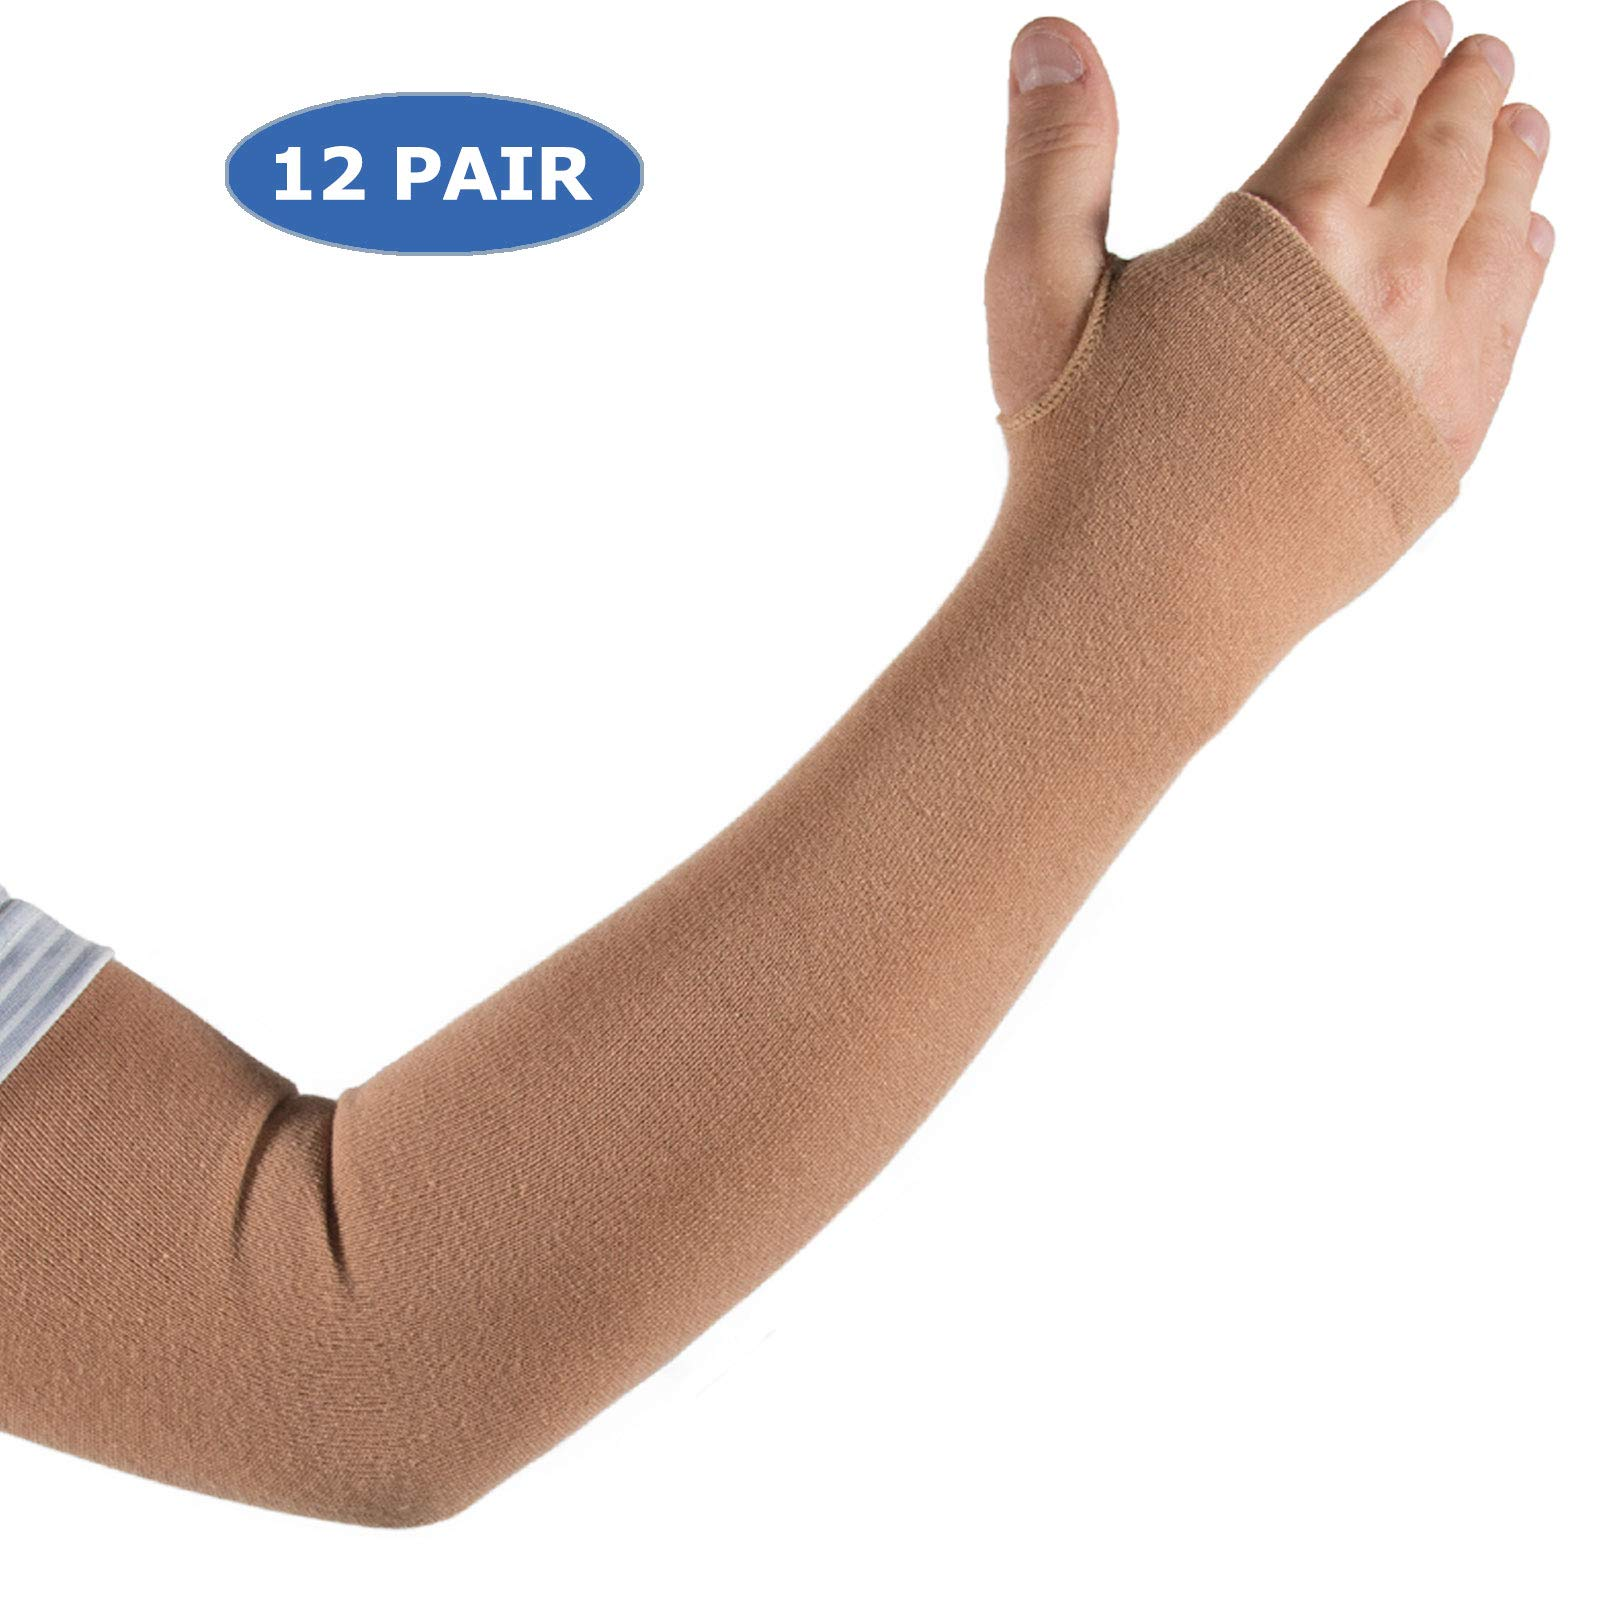 Skin Protection Arm Sleeves for Men & Women | Protect Sensitive Arm and Hand Skin Against Tears, Bruising and Sun Exposure (Available in 4 Sizes and 1, 2 & 12 Pair Packs) by Kinship Comfort Brands